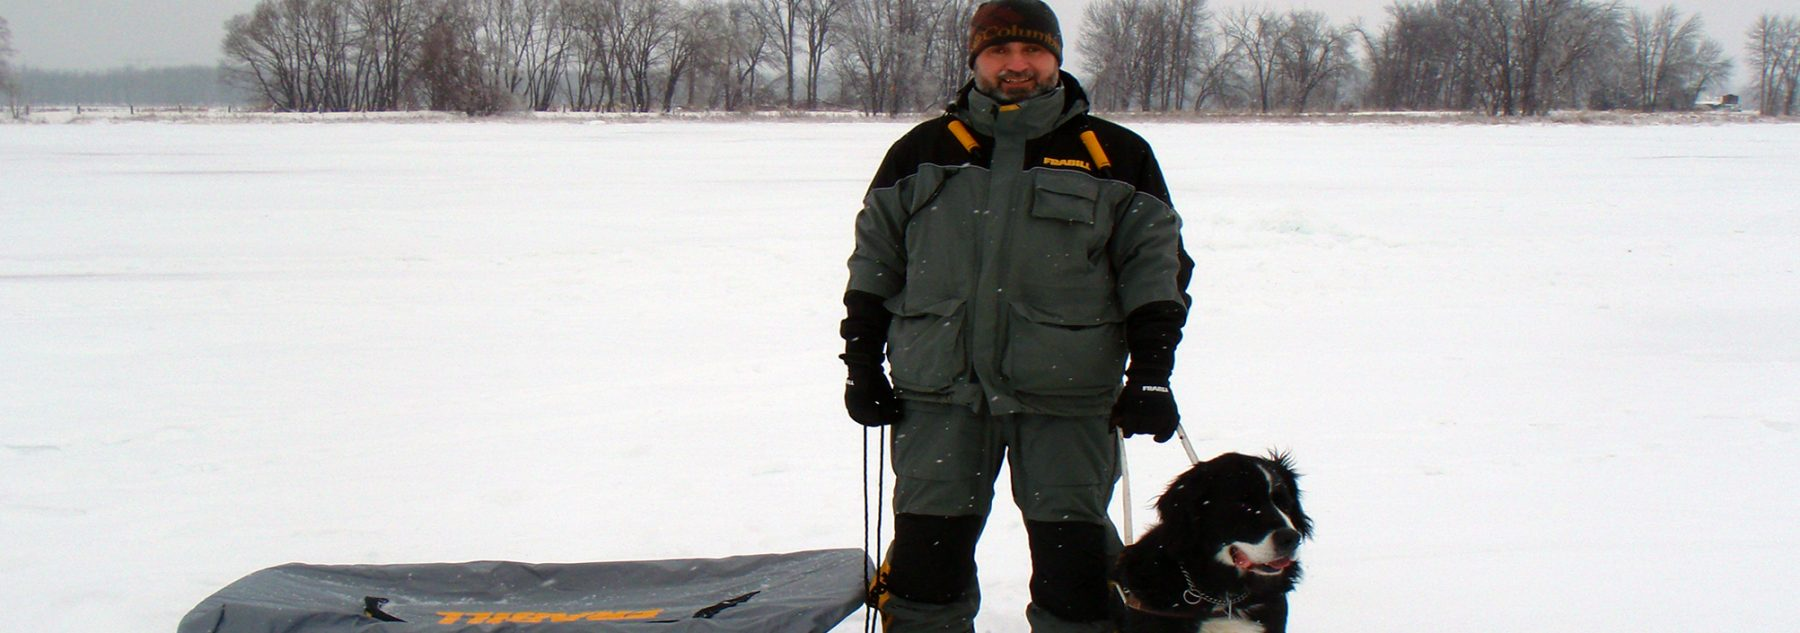 Lawrence and Moby with a sled standing on the frozen ice